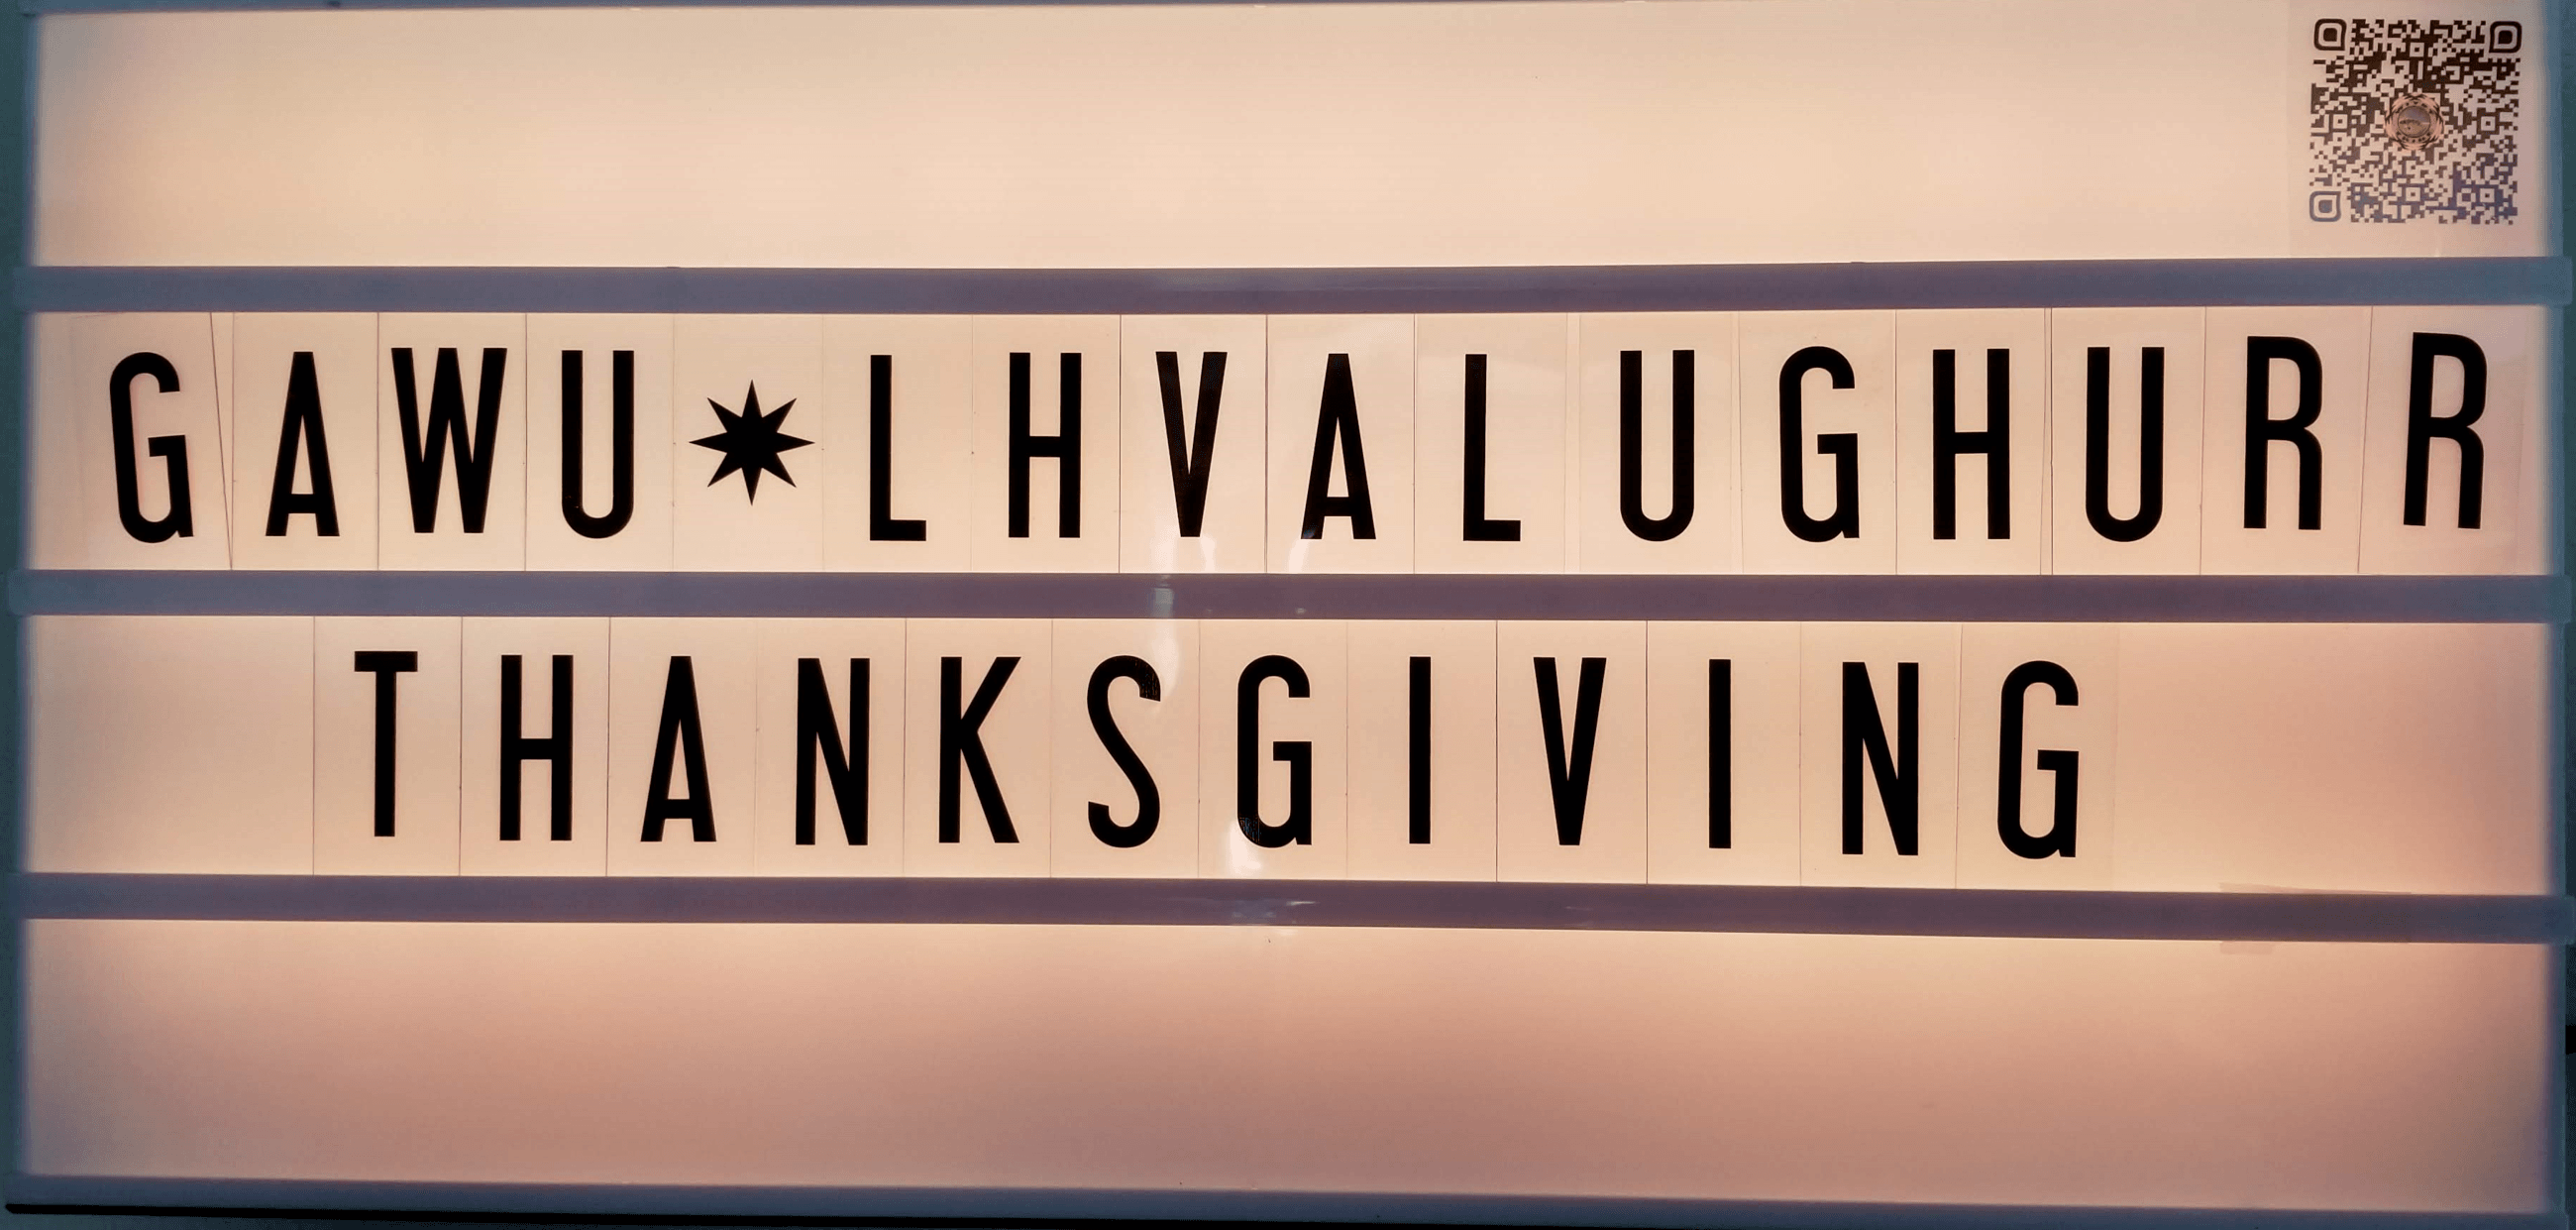 gawu_lhvalughurr_thanksgiving